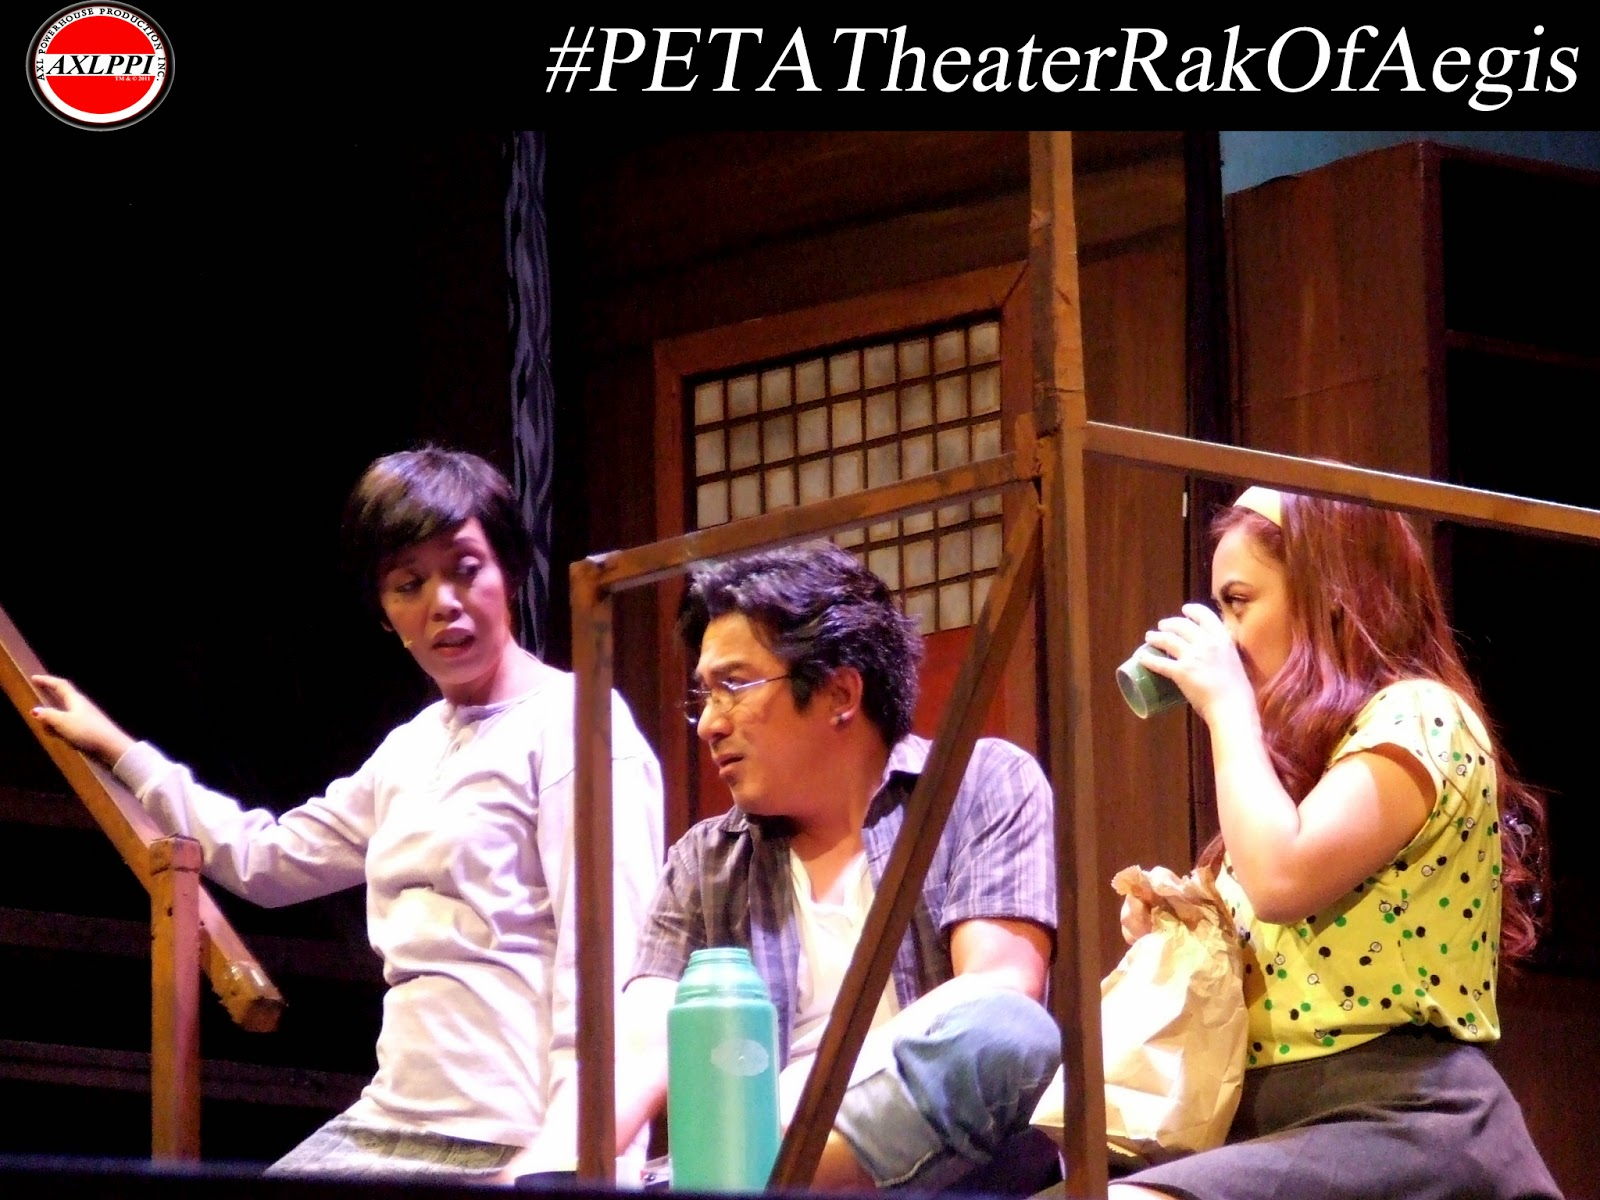 a review of the play uyayi ng ulan Daily archives: september 8, 2013 peace mindanao by jaime lim 08 sunday sep 2013 in don pagusara's one-act play uyayi sa digmaan, set in the resources-rich liguasan marsh ang bangka ng ating buhay.